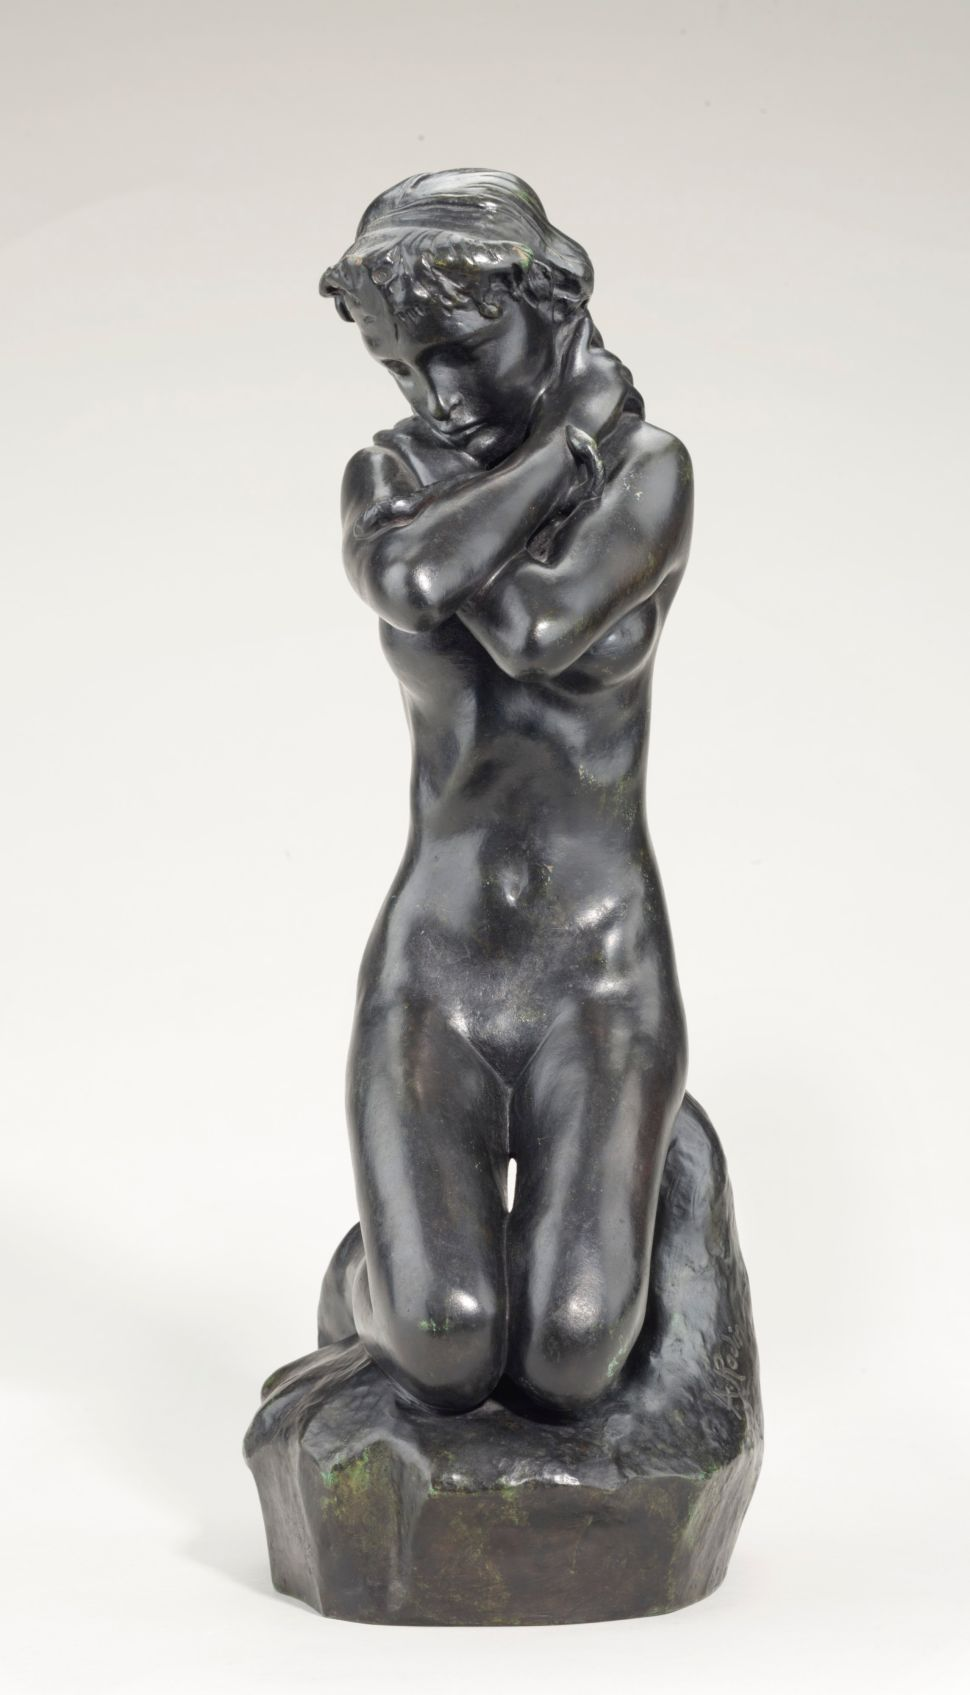 Stolen Rodin Sculpture Recovered After 24 Years Missing